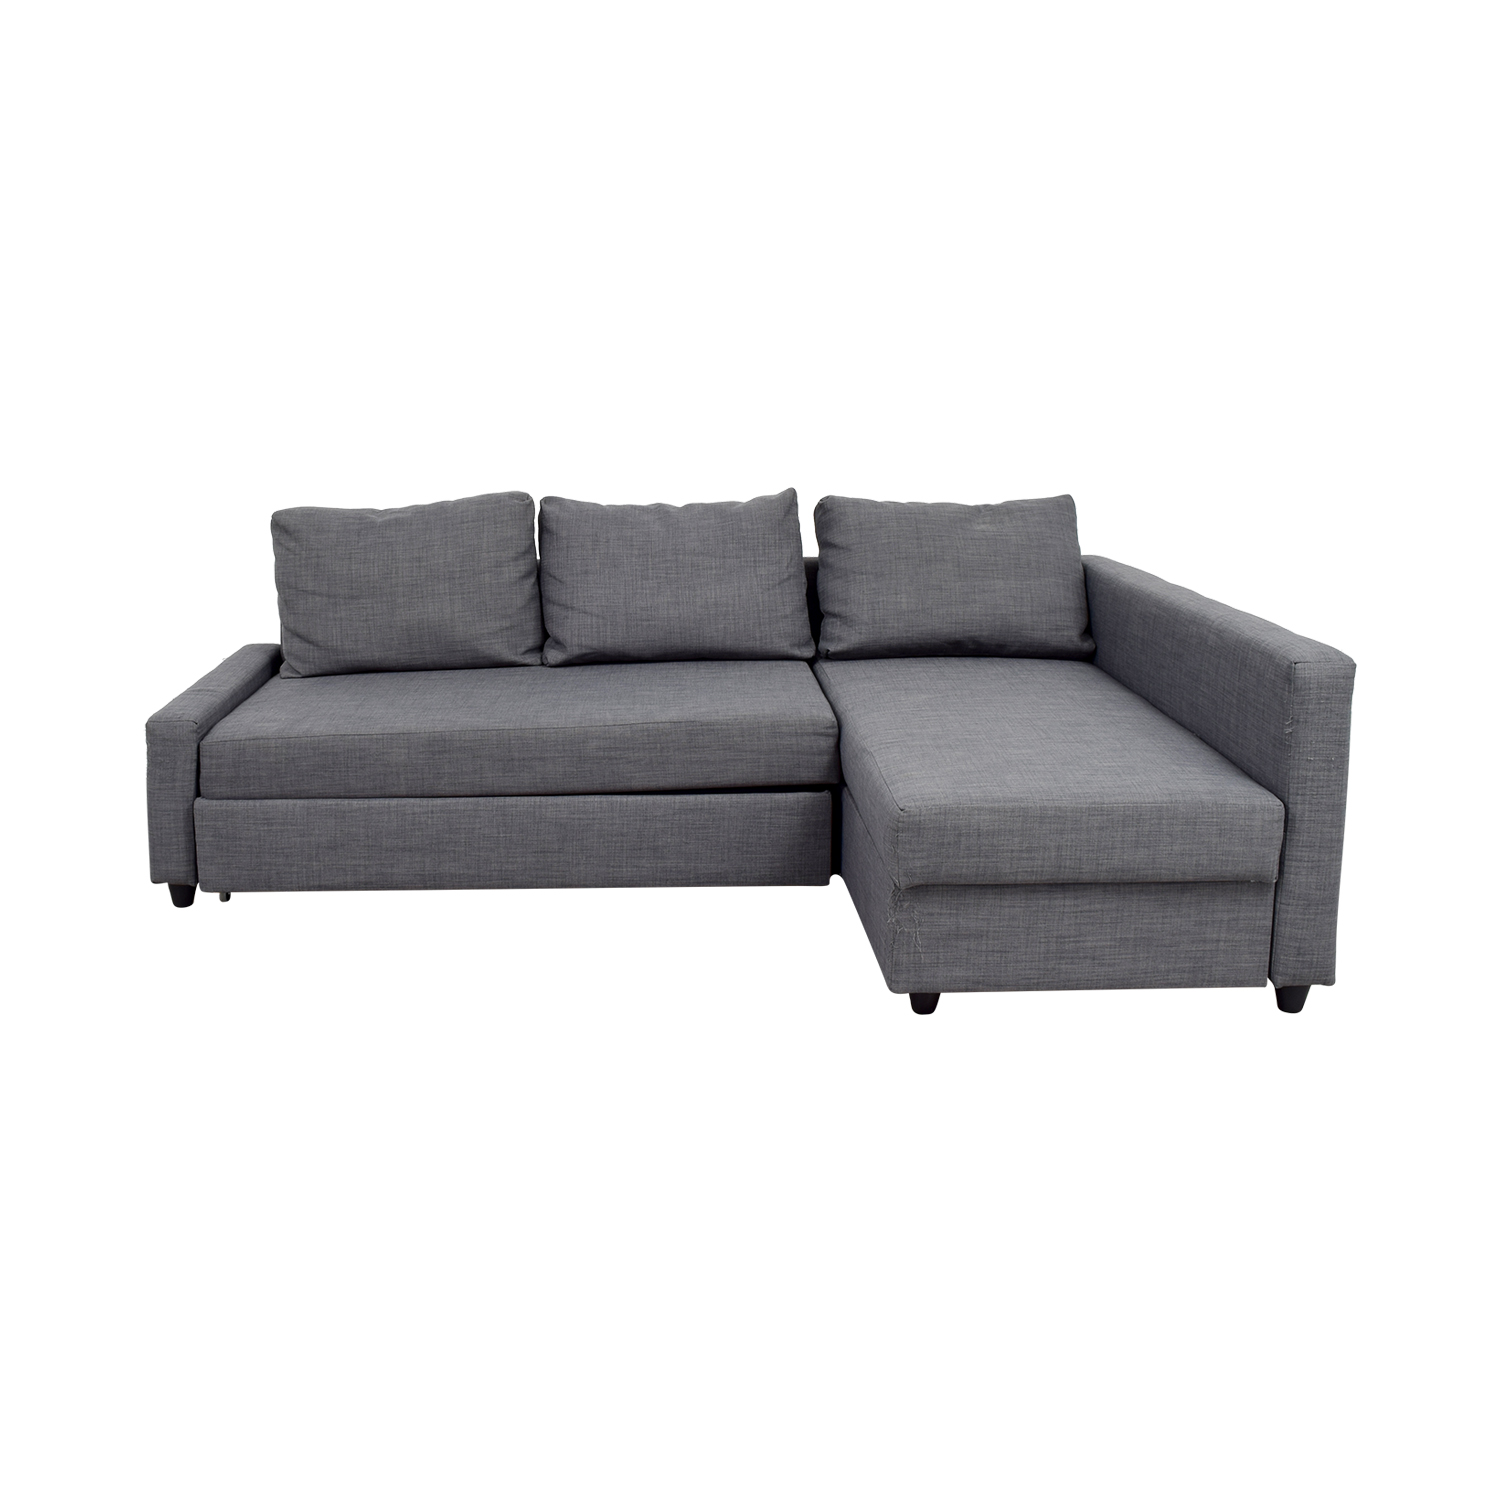 huge discount 540da 17ce2 41% OFF - IKEA IKEA Grey Sleeper Chaise Sectional / Sofas